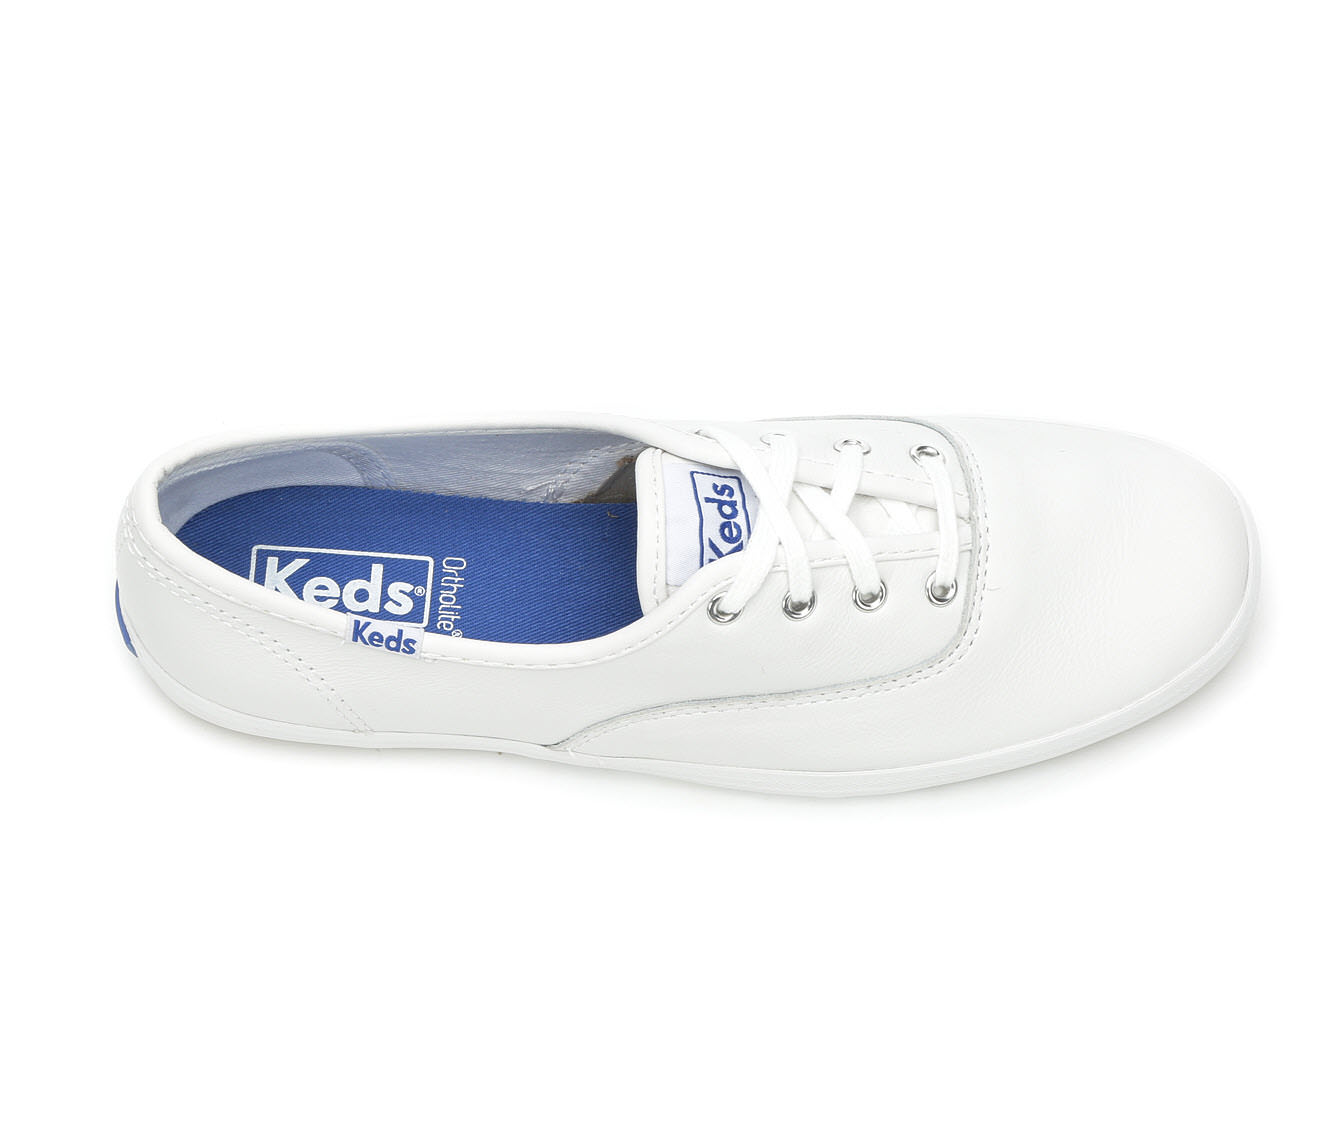 Keds Champion Leather Oxford Sneakers